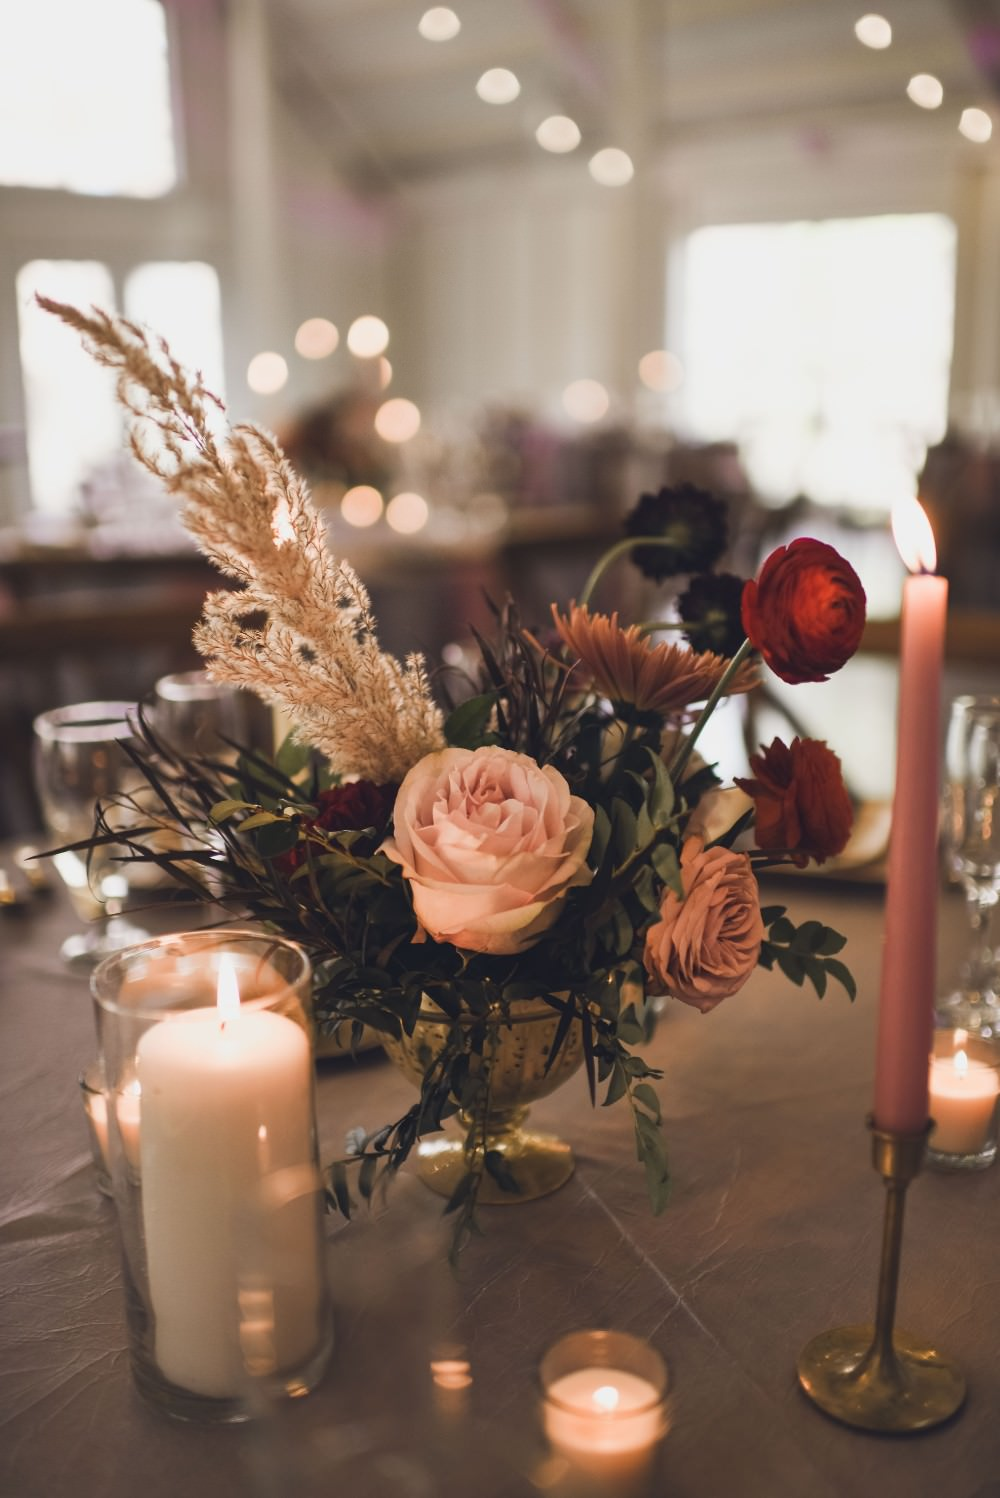 Table Flowers Centrepiece Decor Pink Red Pampas Grass Kindred Barn Wedding The Kindred Collective